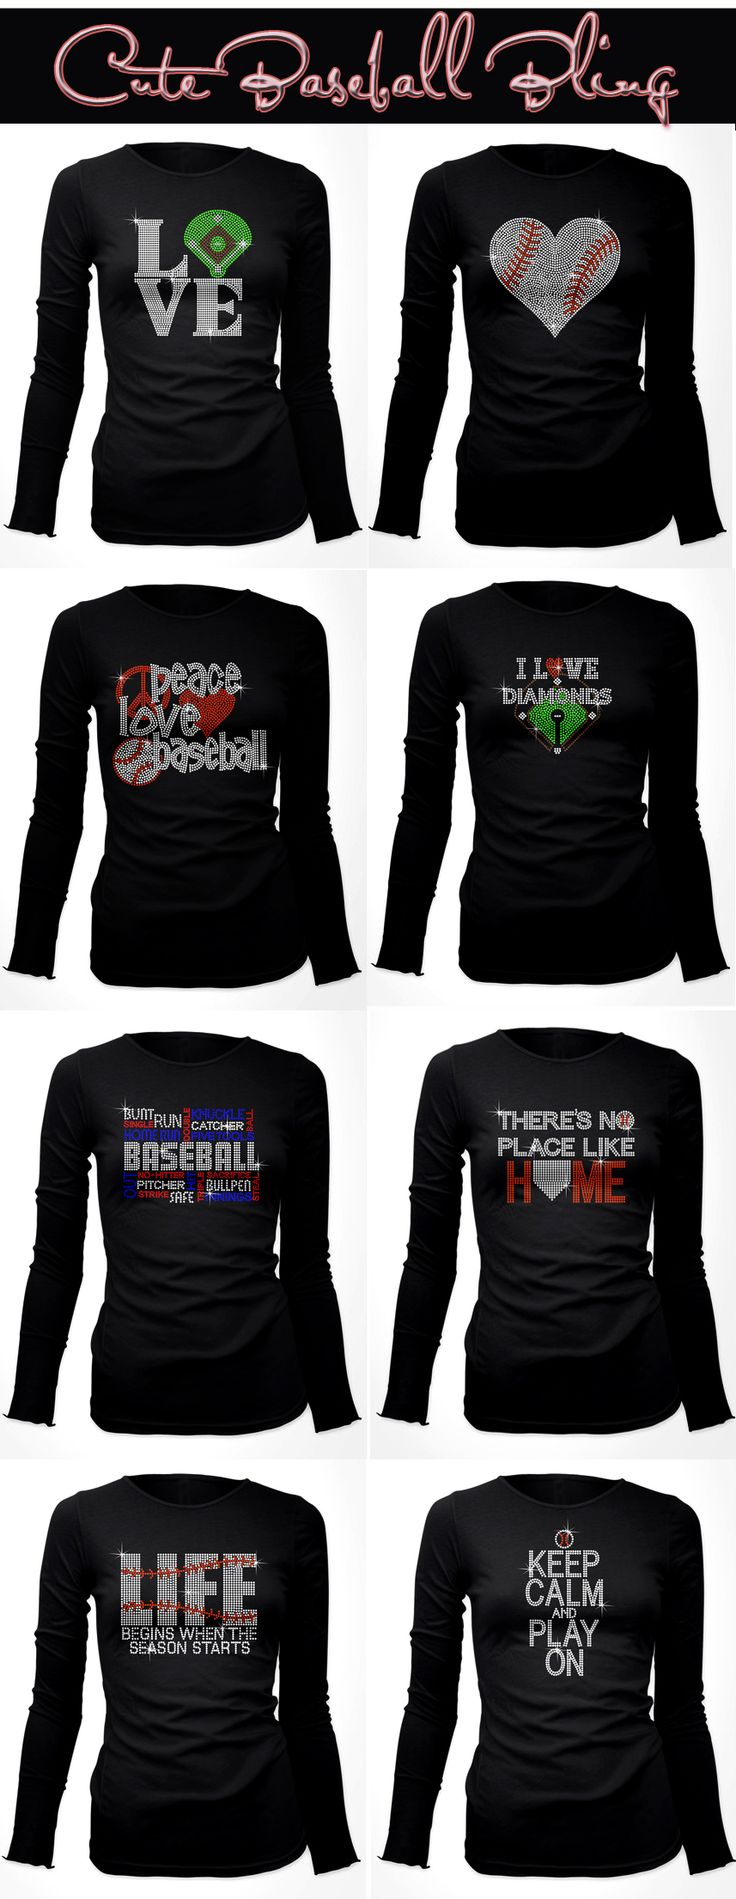 Really Cute Rhinestone Baseball Shirts which can be customized. For the girls in my life who love baseball.